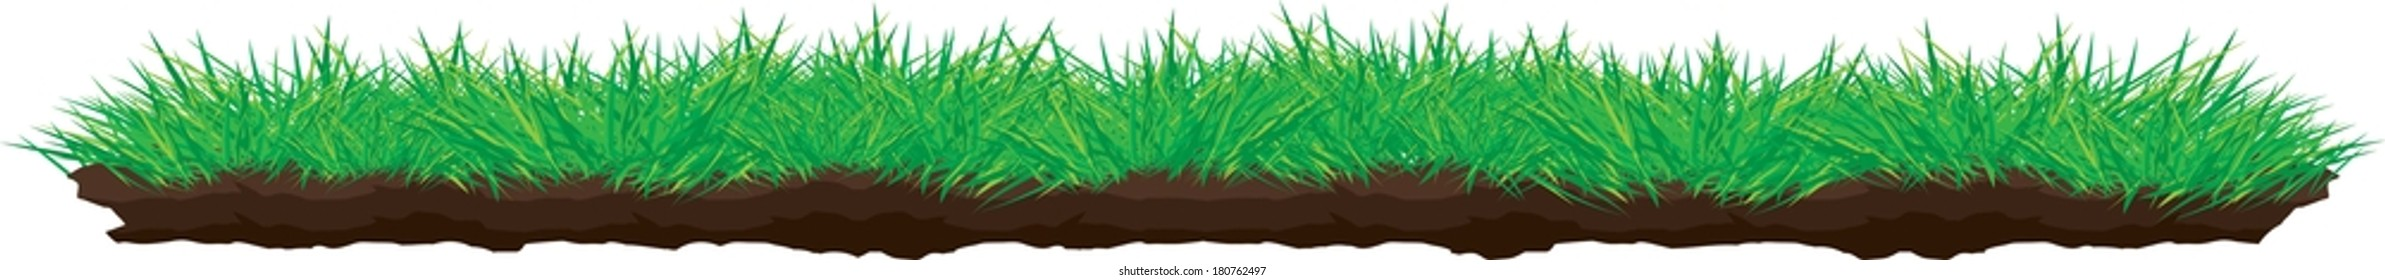 Grass Growing out of Dirt Turf Side View Vector